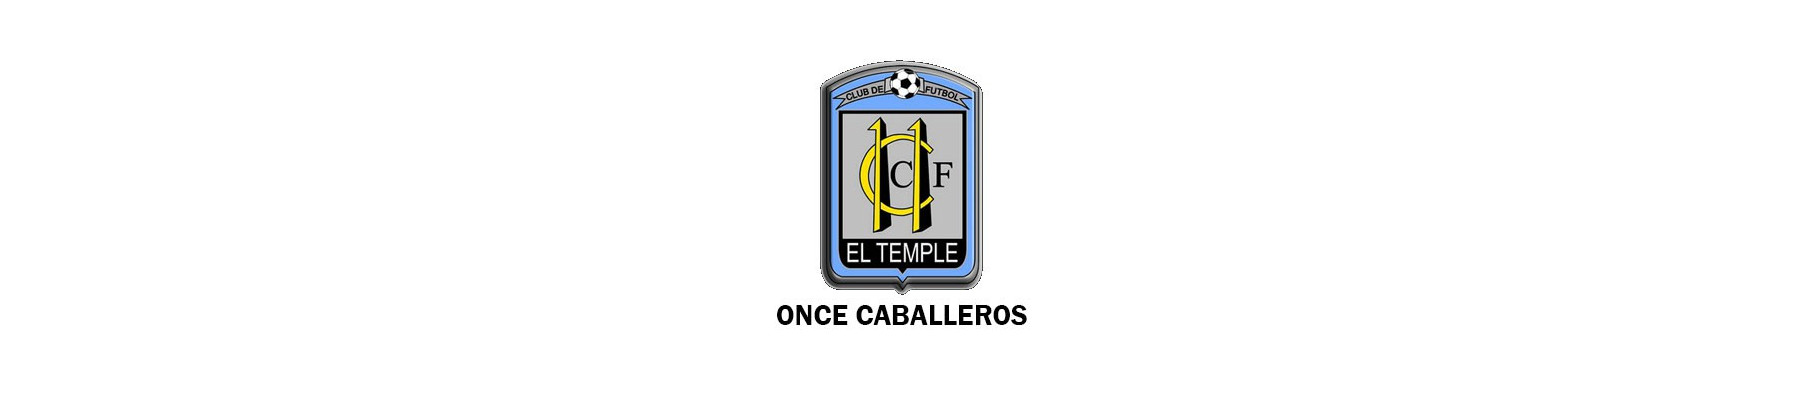 Once caballeros C.F.